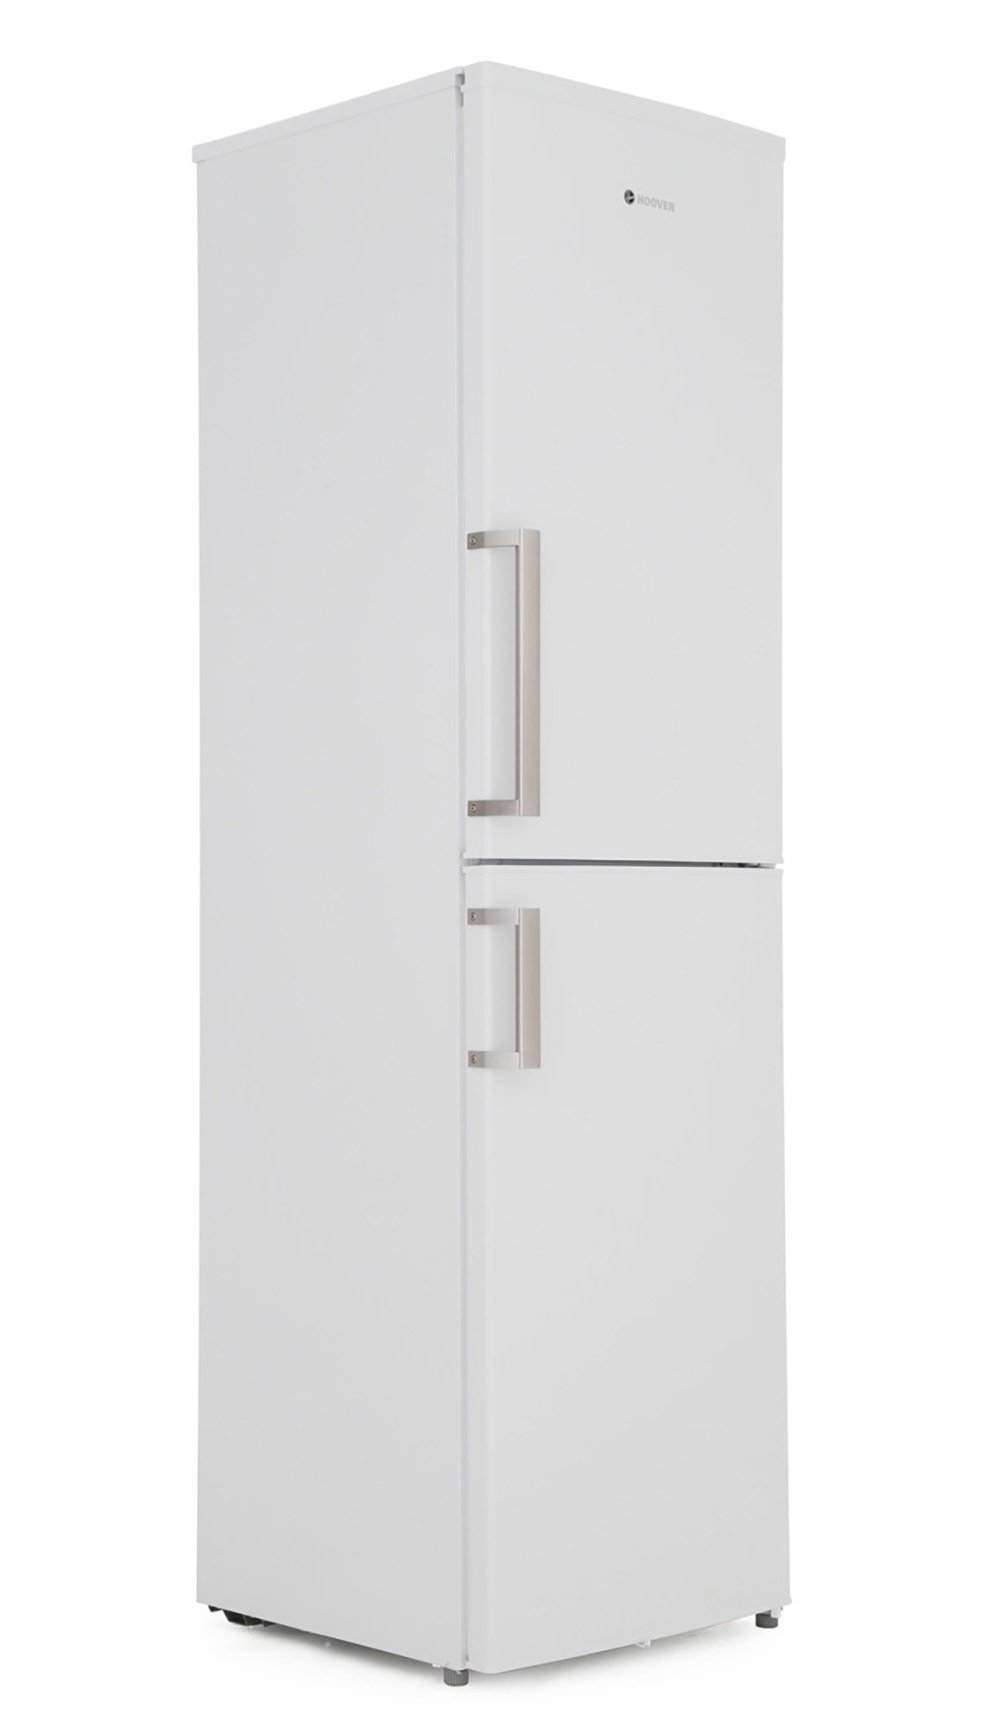 Hoover HVBF5192WHK Frost Free Fridge Freezer